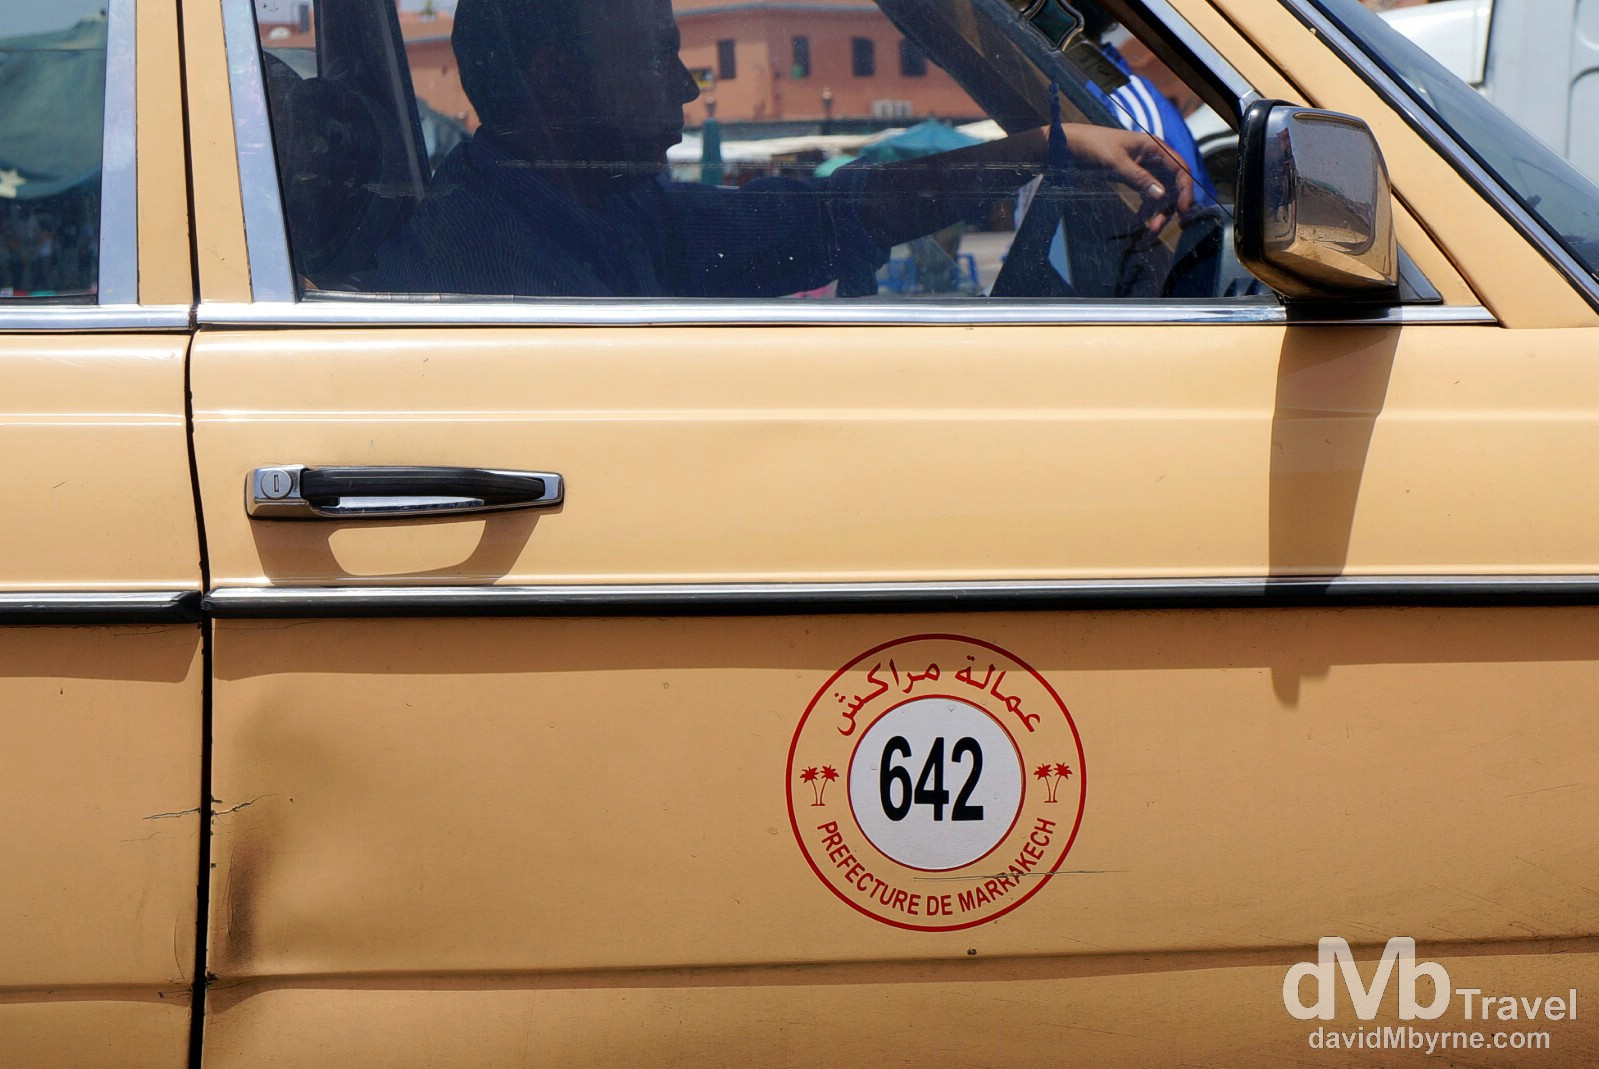 A Prefecture of Marrakech taxi on the streets of Marrakech, Morocco. May 8th, 2014.